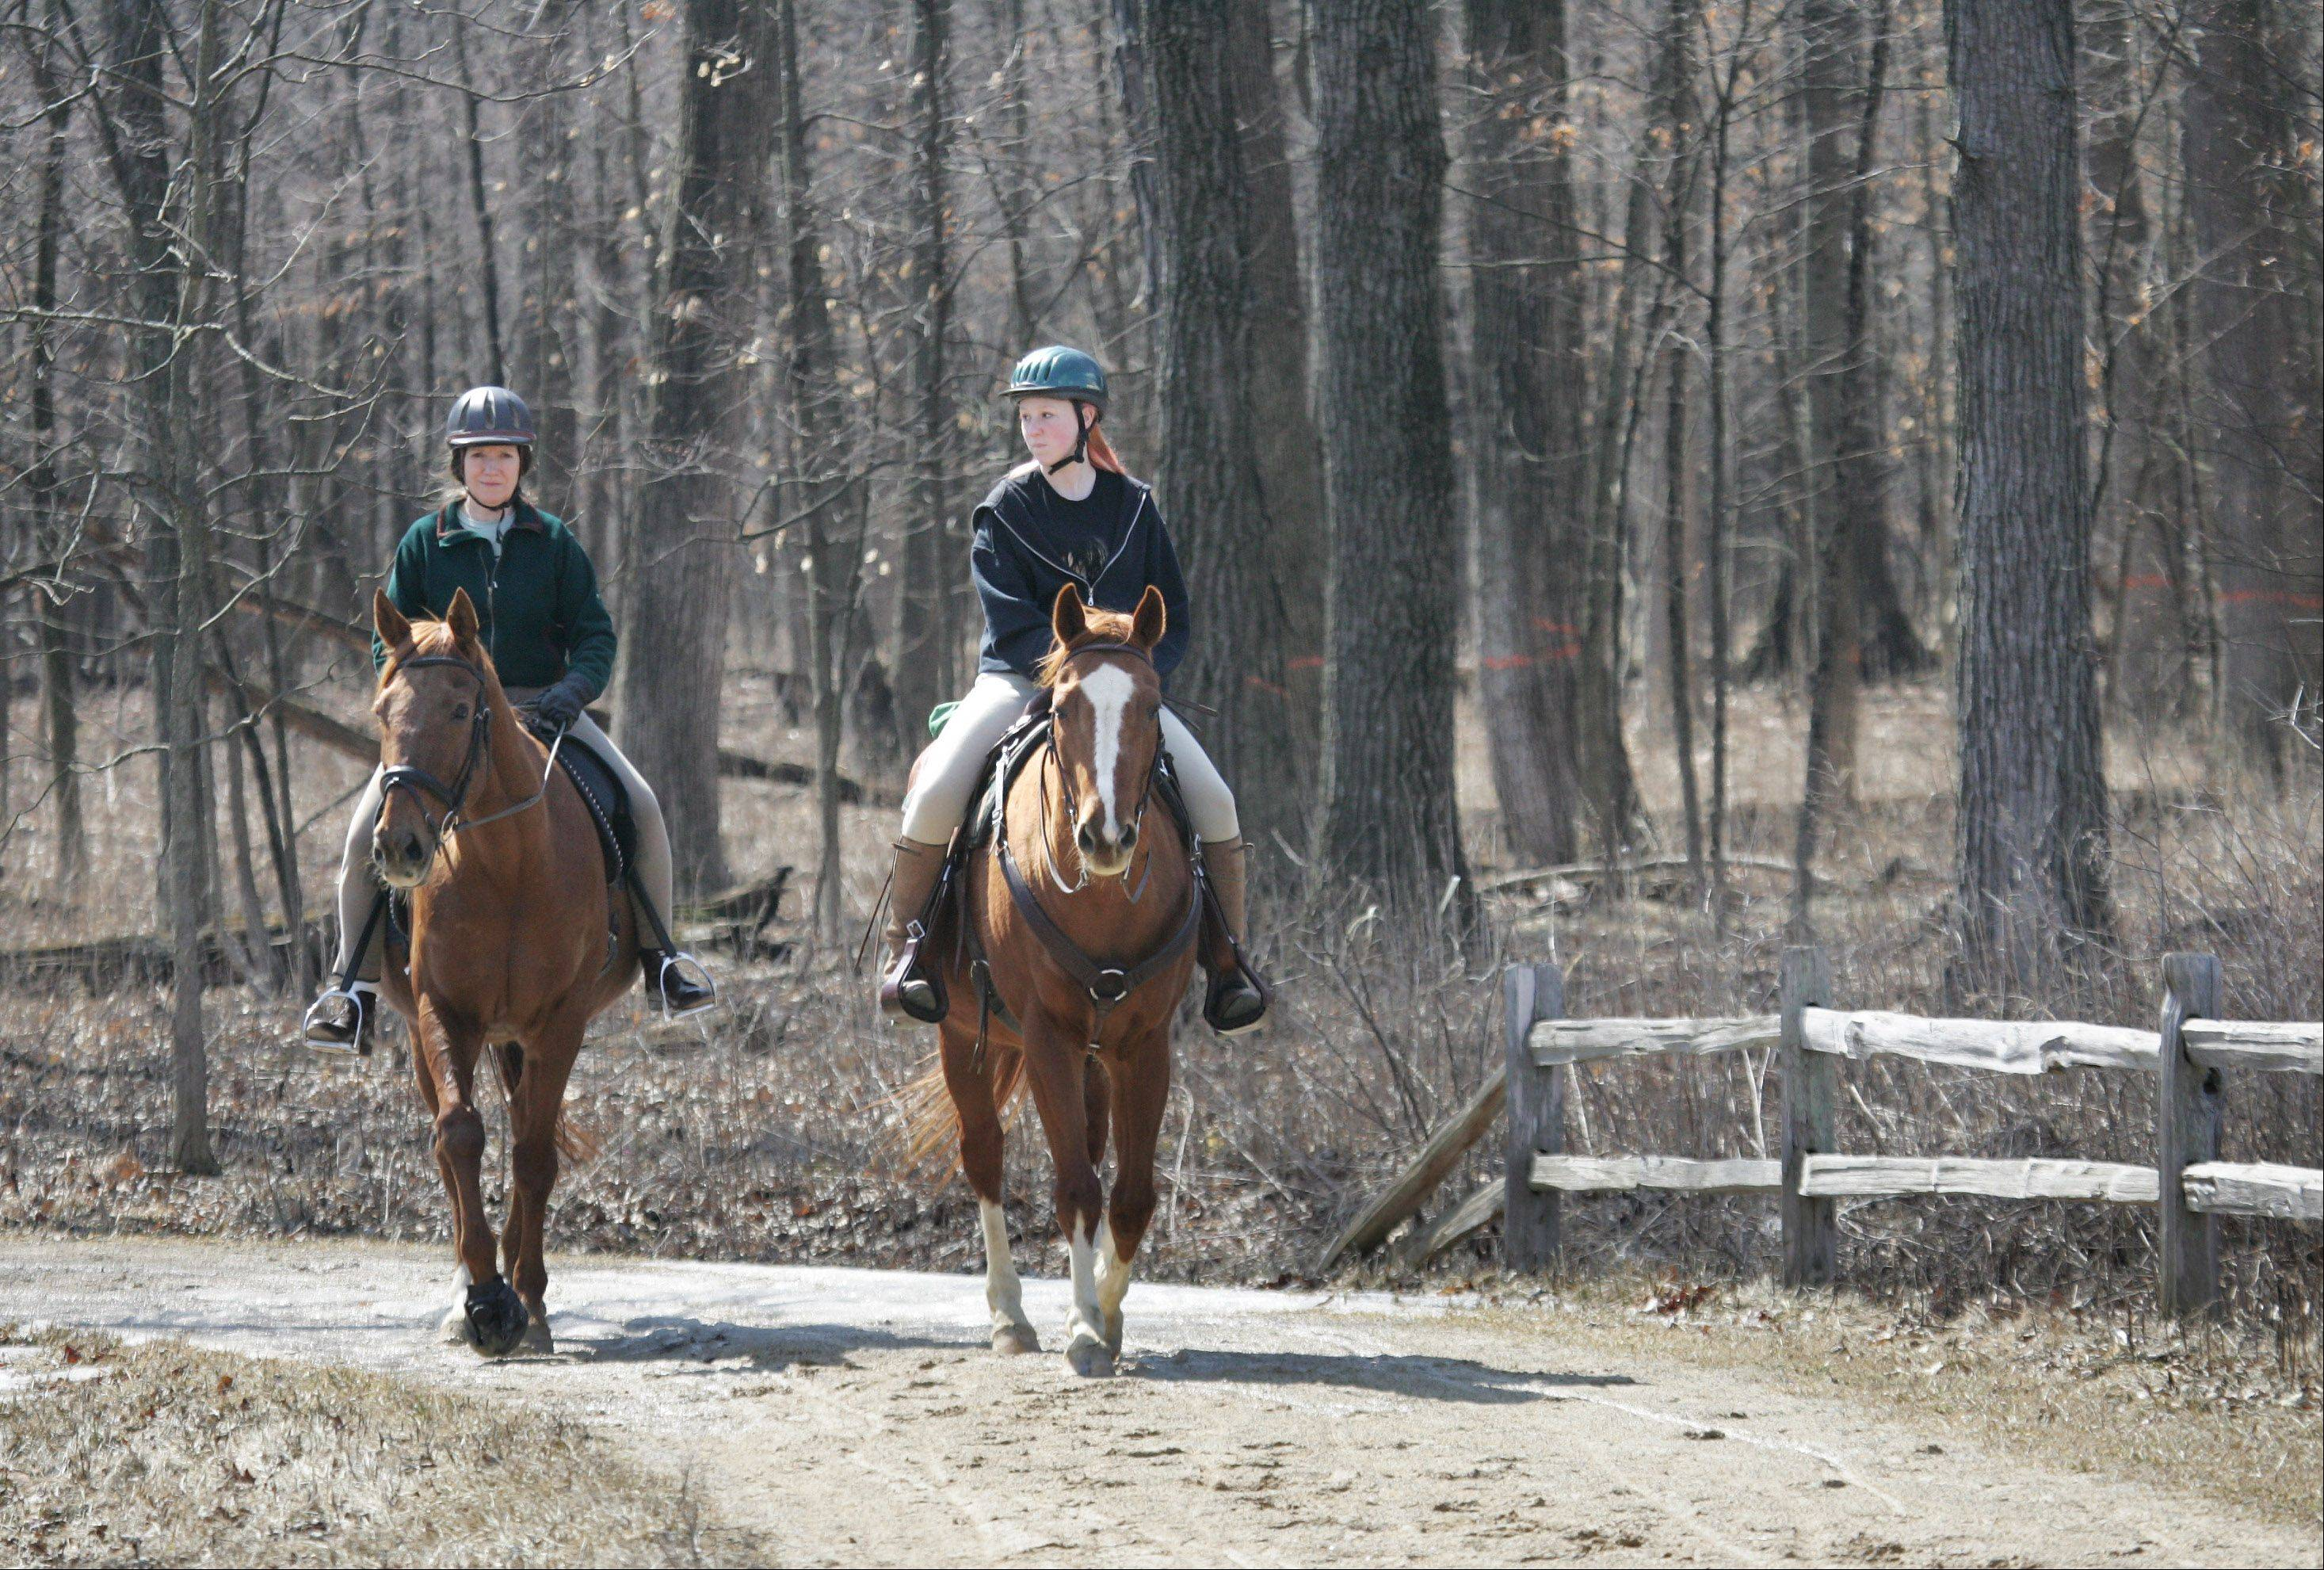 Sheridan Turner, of Glenview, left, rides Sir Winston and Emily Harrison, 15, of Hanover Park, rides Harley as they travel on the trails in MacArthur Woods near Vernon Hills on Easter Sunday. Area residents took advantage of the Lake County Forest Preserves on the nice spring day.